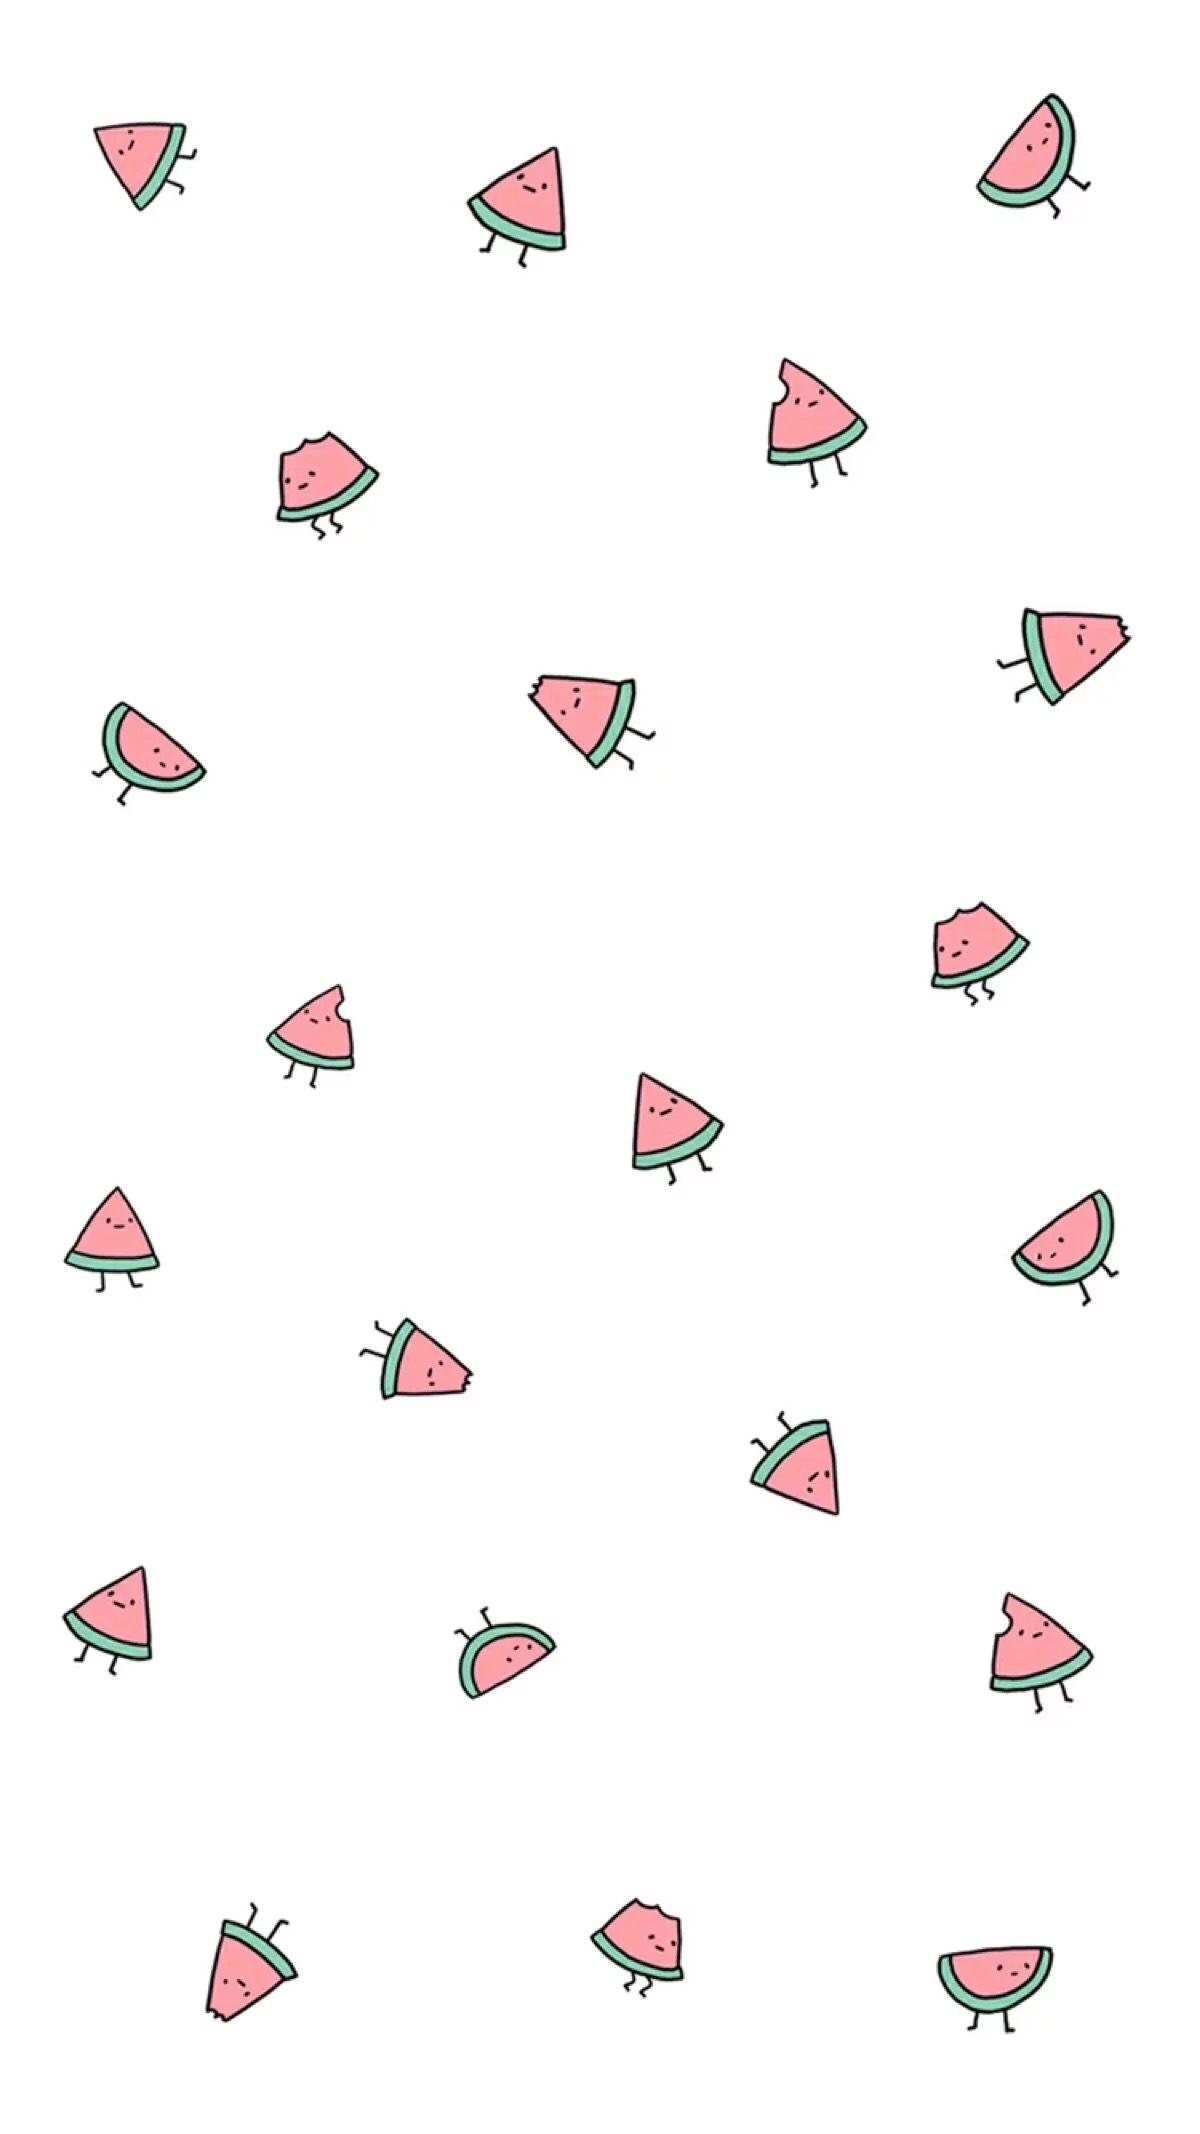 Happiness Quotes Wallpaper Iphone Sand 237 A Kawaii 3 Crafty Clay In 2019 Cute Wallpaper